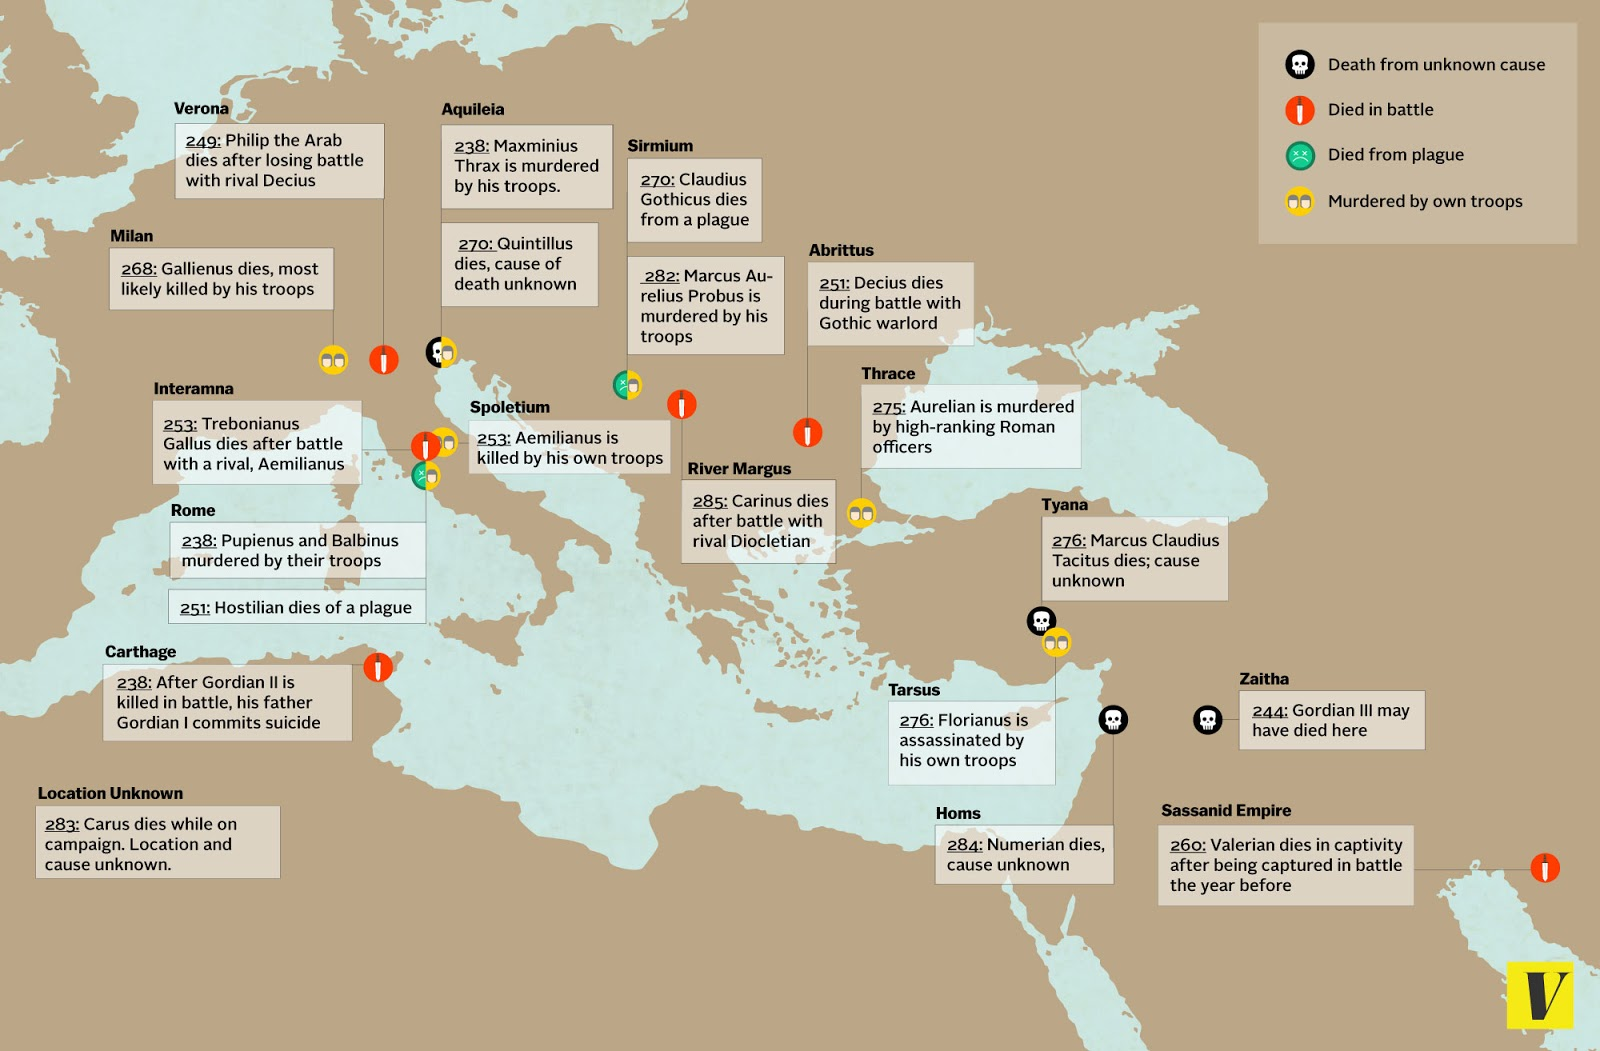 More than twenty Roman emperors died in a period of 37 years